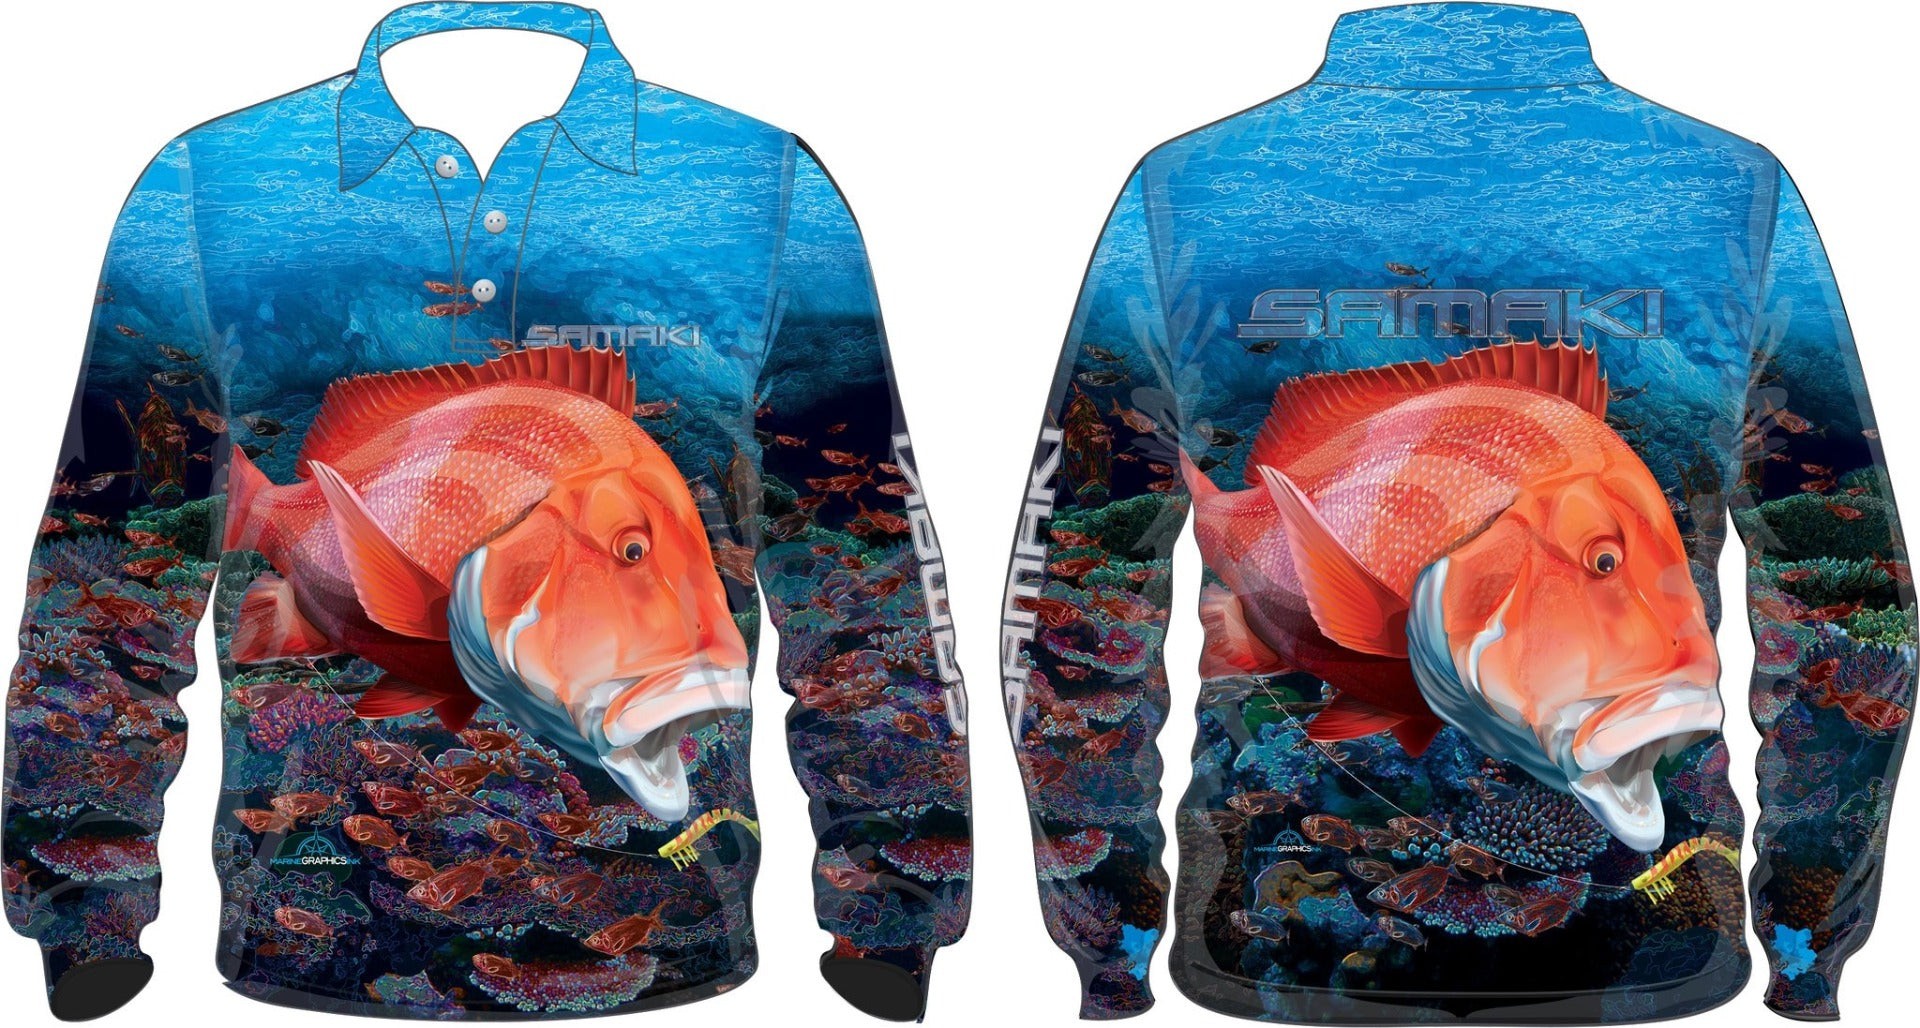 Samaki Red Emperor Long Sleeve Adult Fishing Shirt